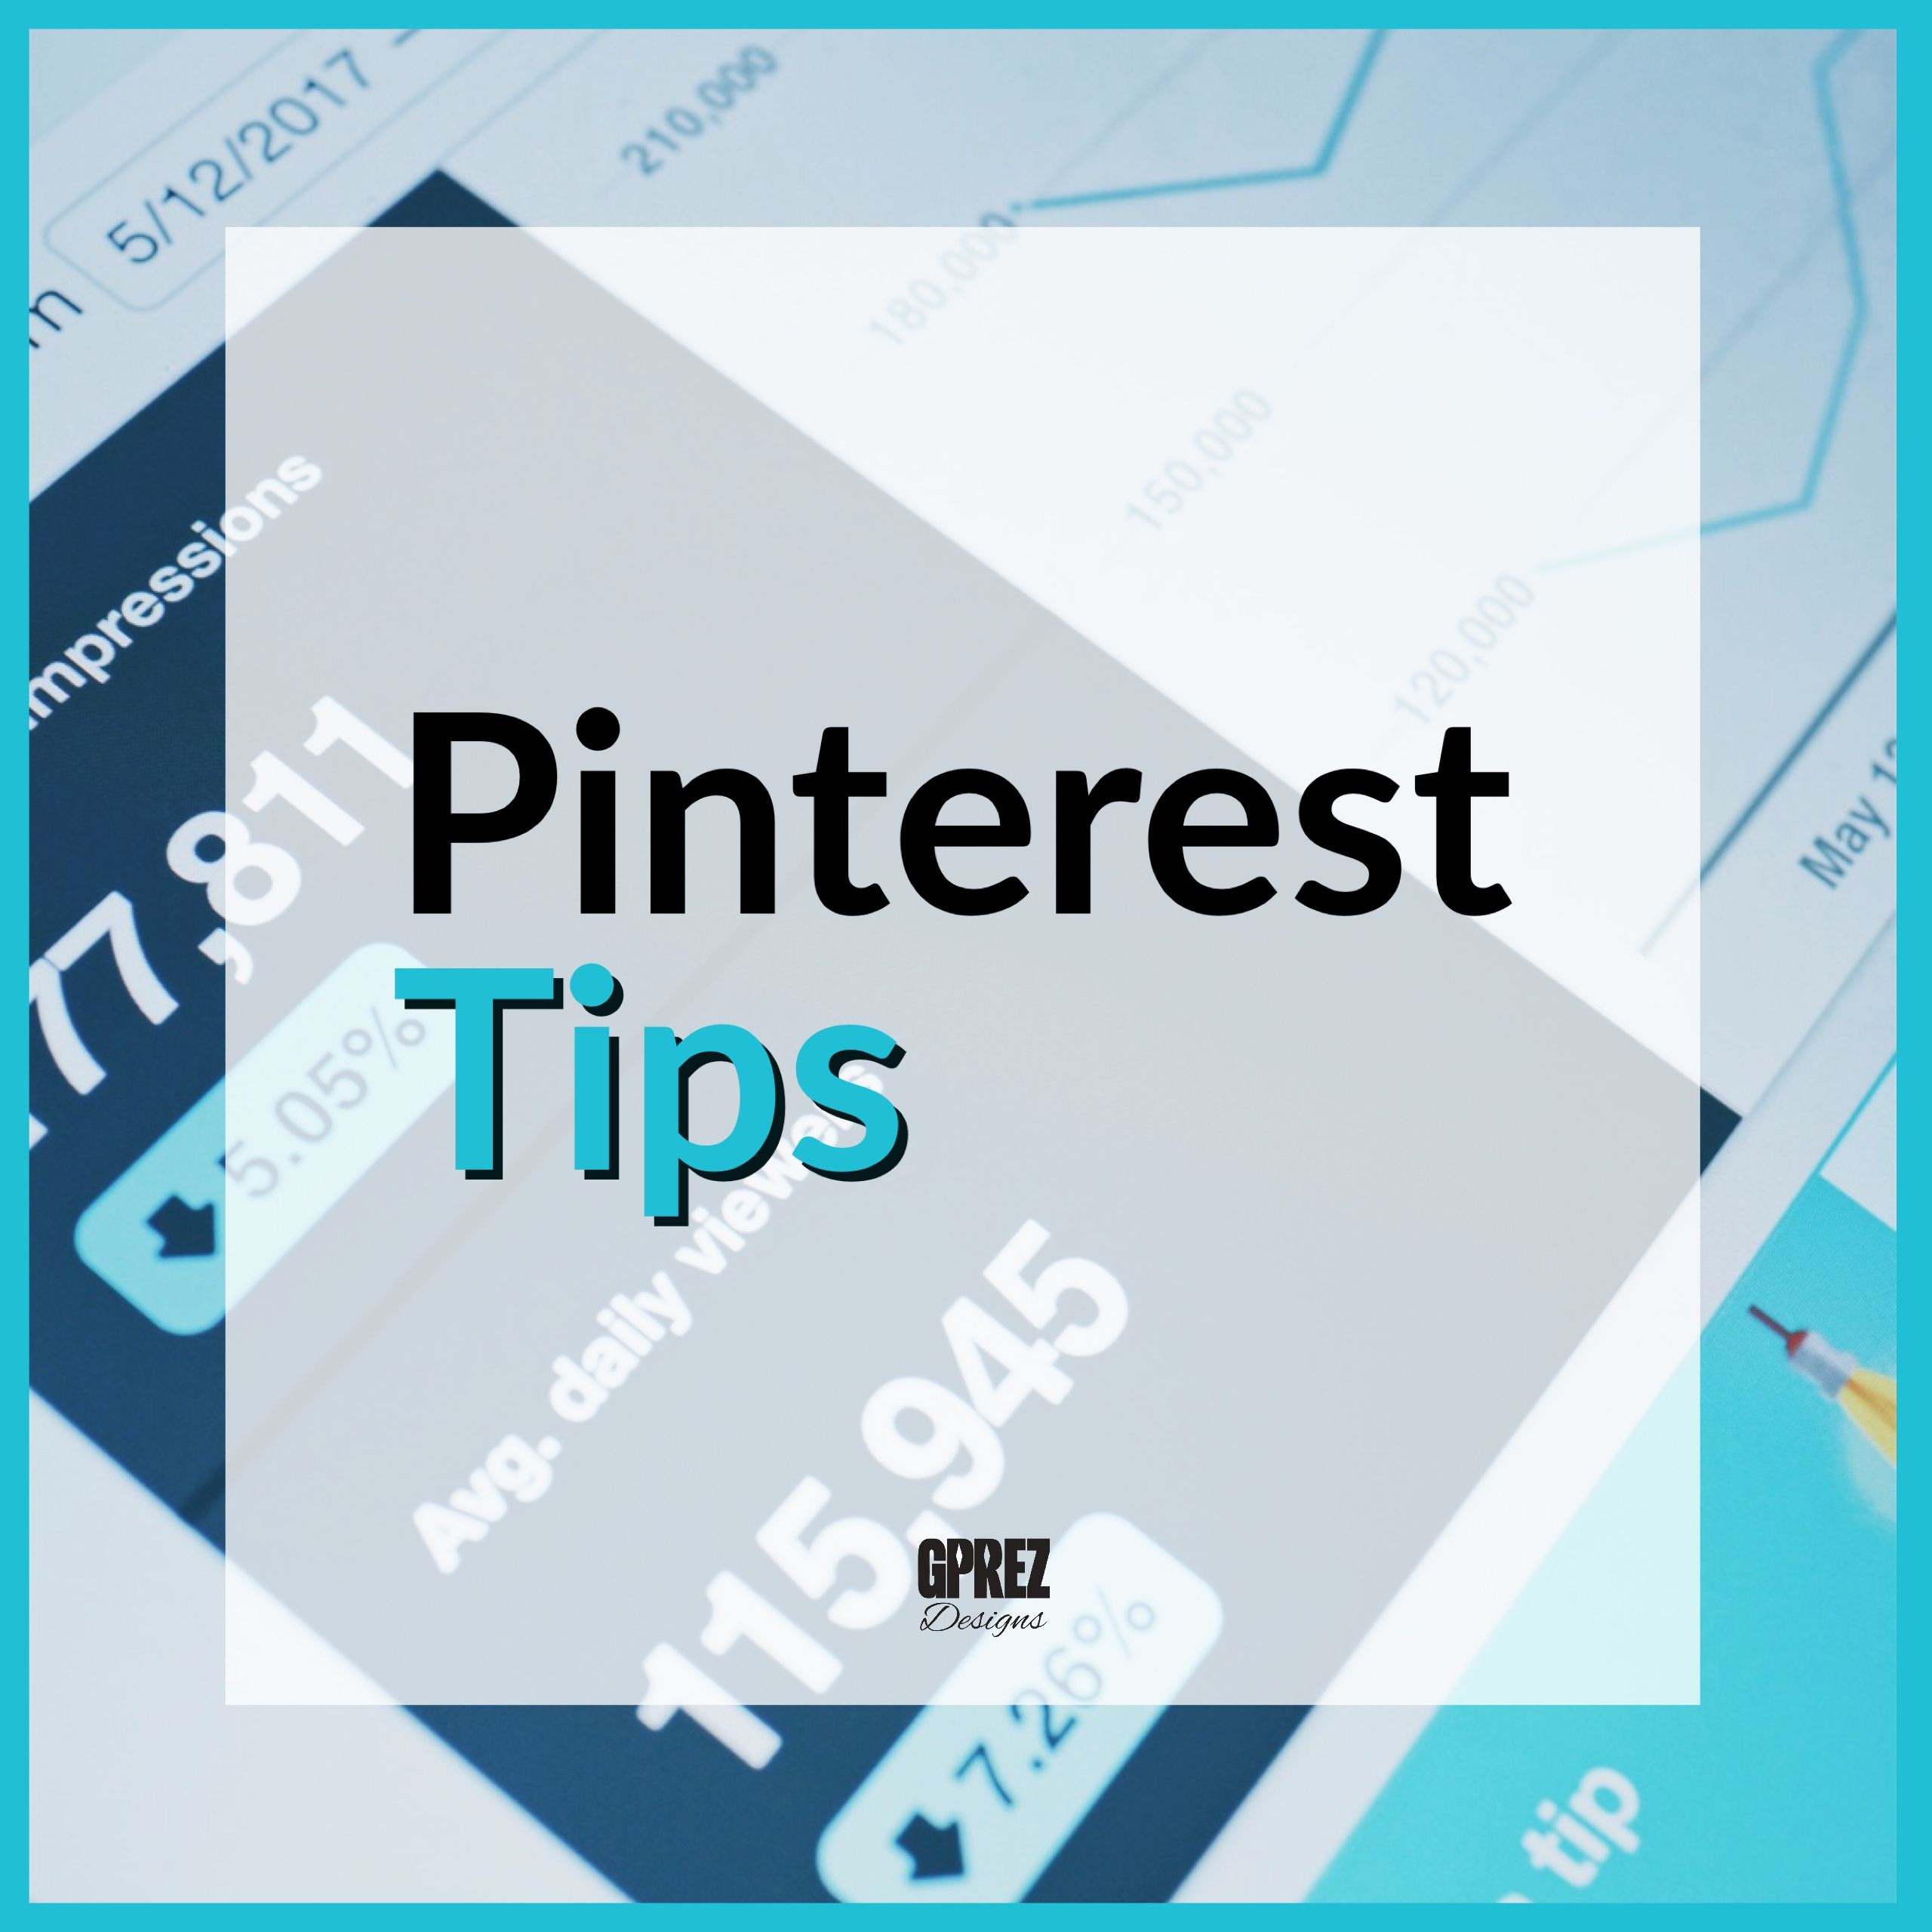 Some Helpful Tips To Grow Your Business Thru Pinterest